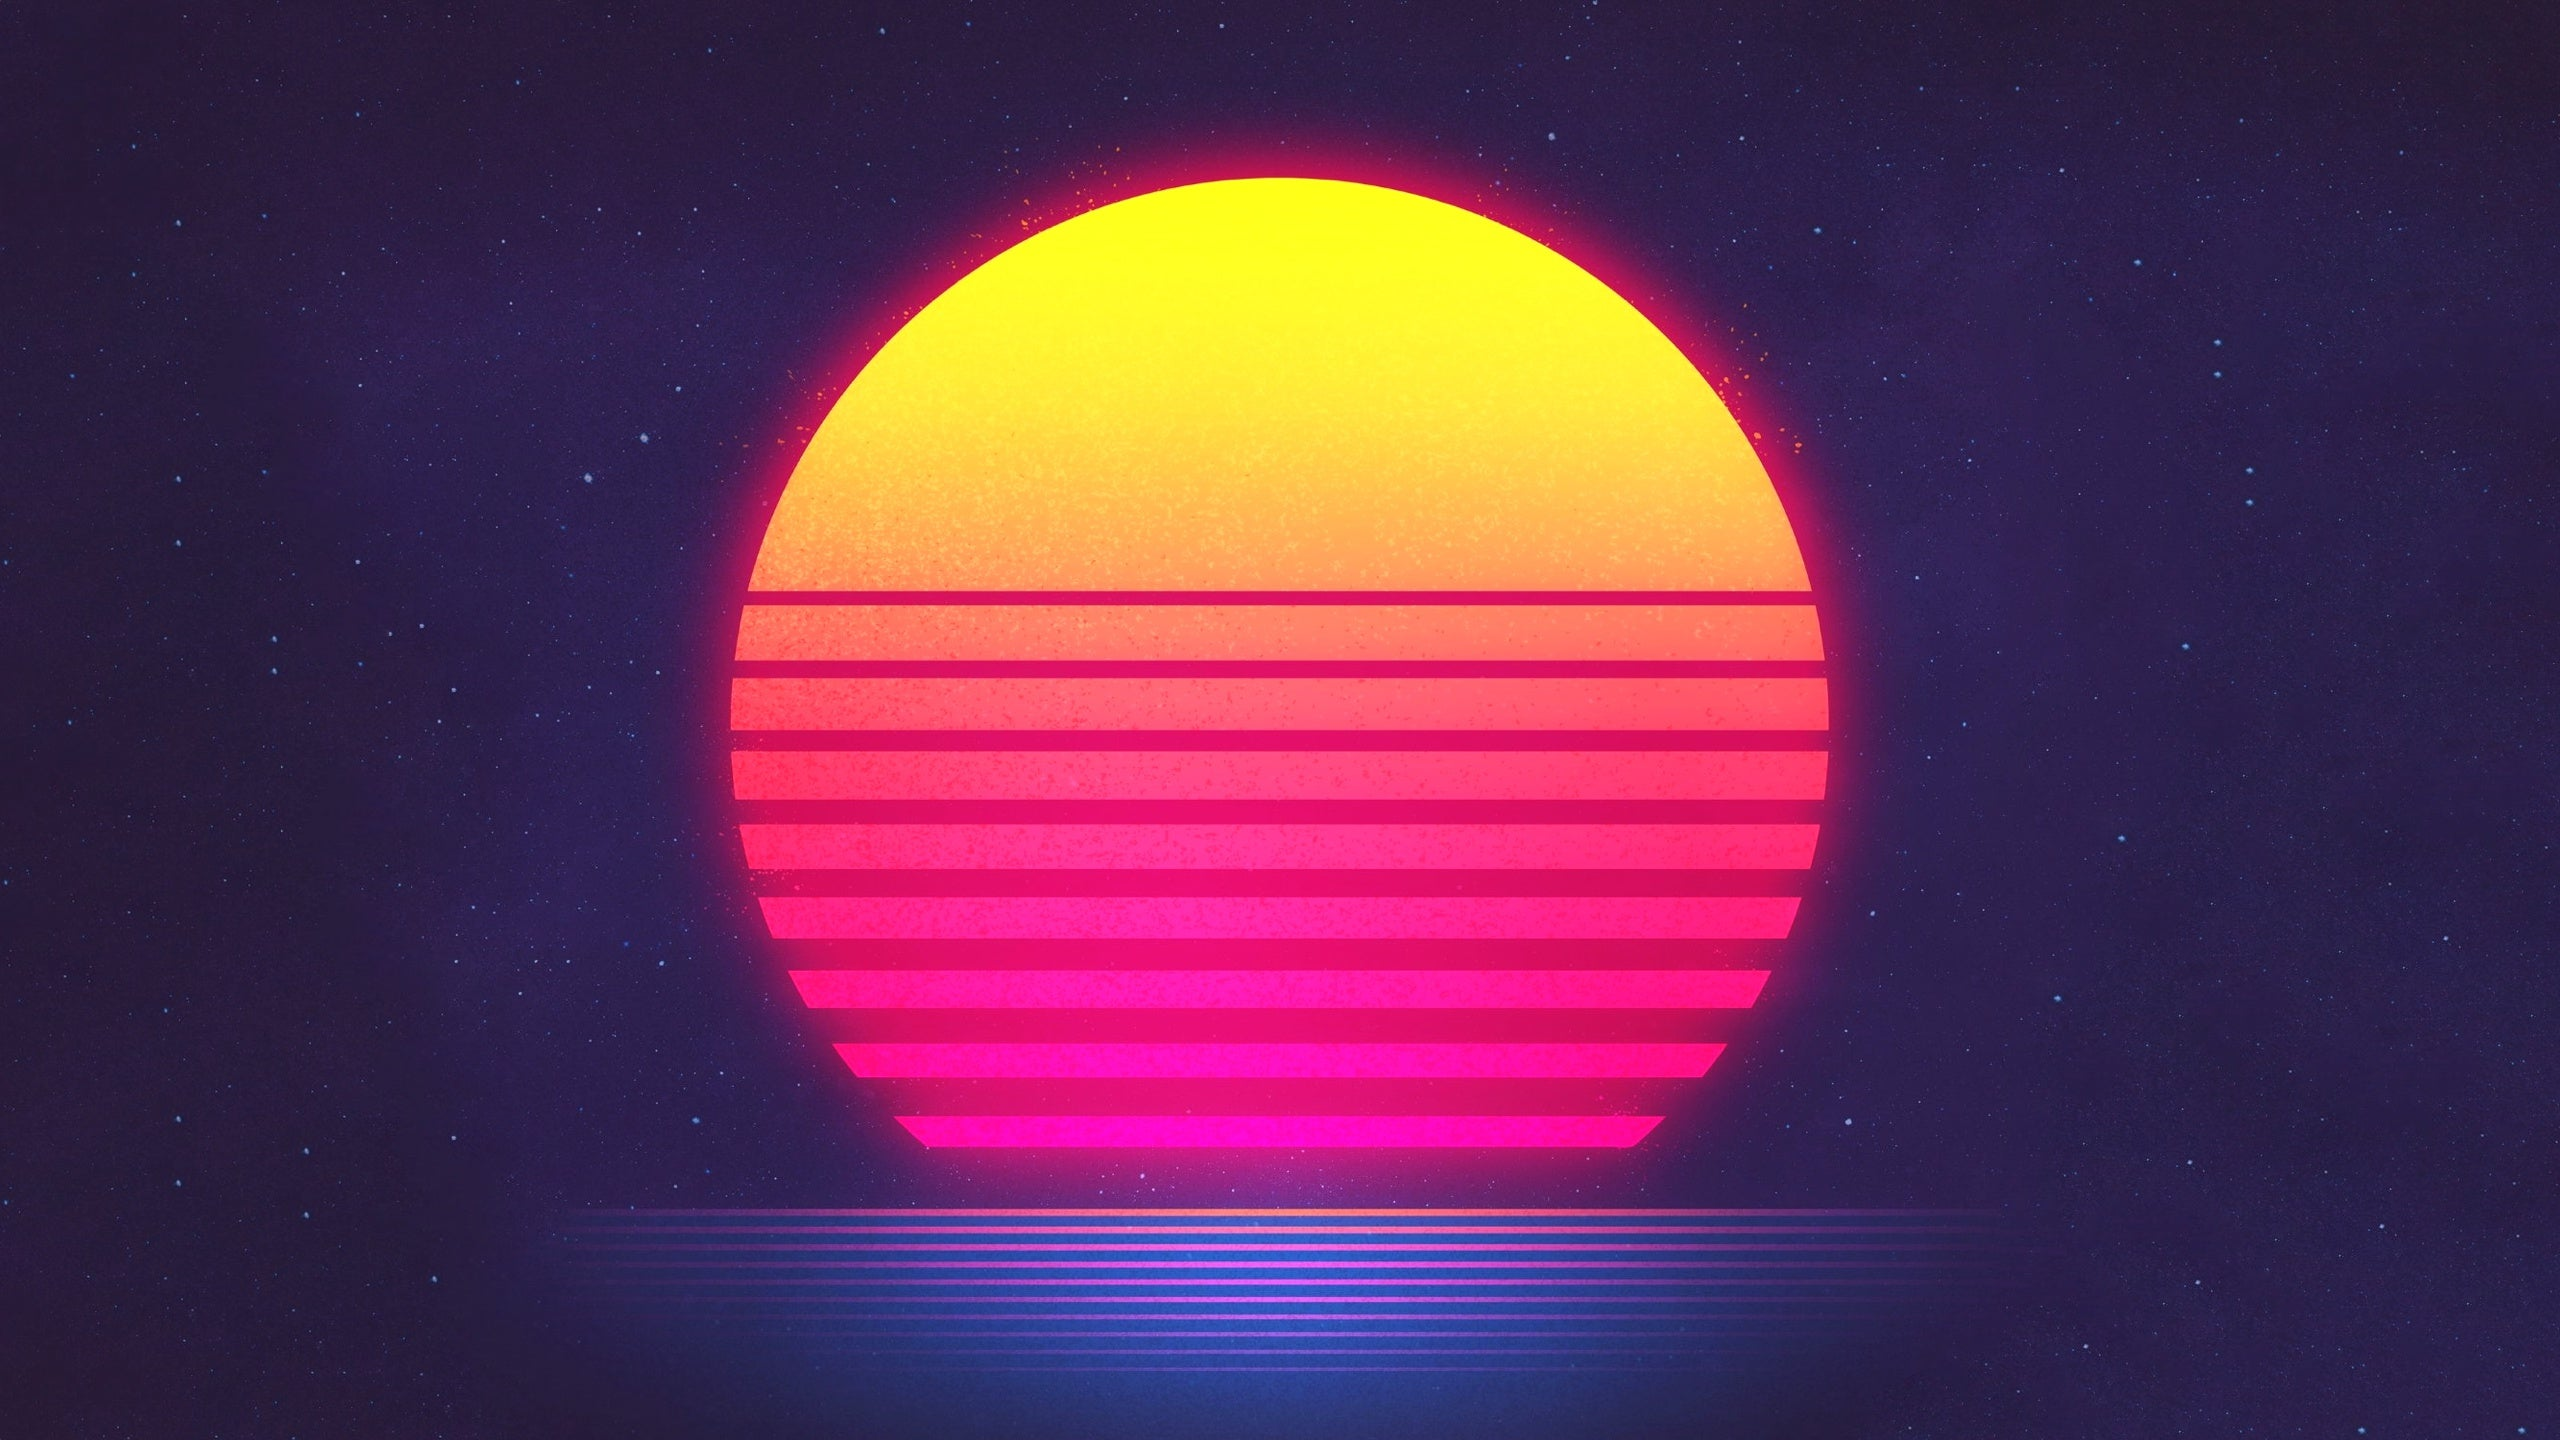 Retrowave 4k Wallpapers For Your Desktop Or Mobile Screen Free And Easy To Download